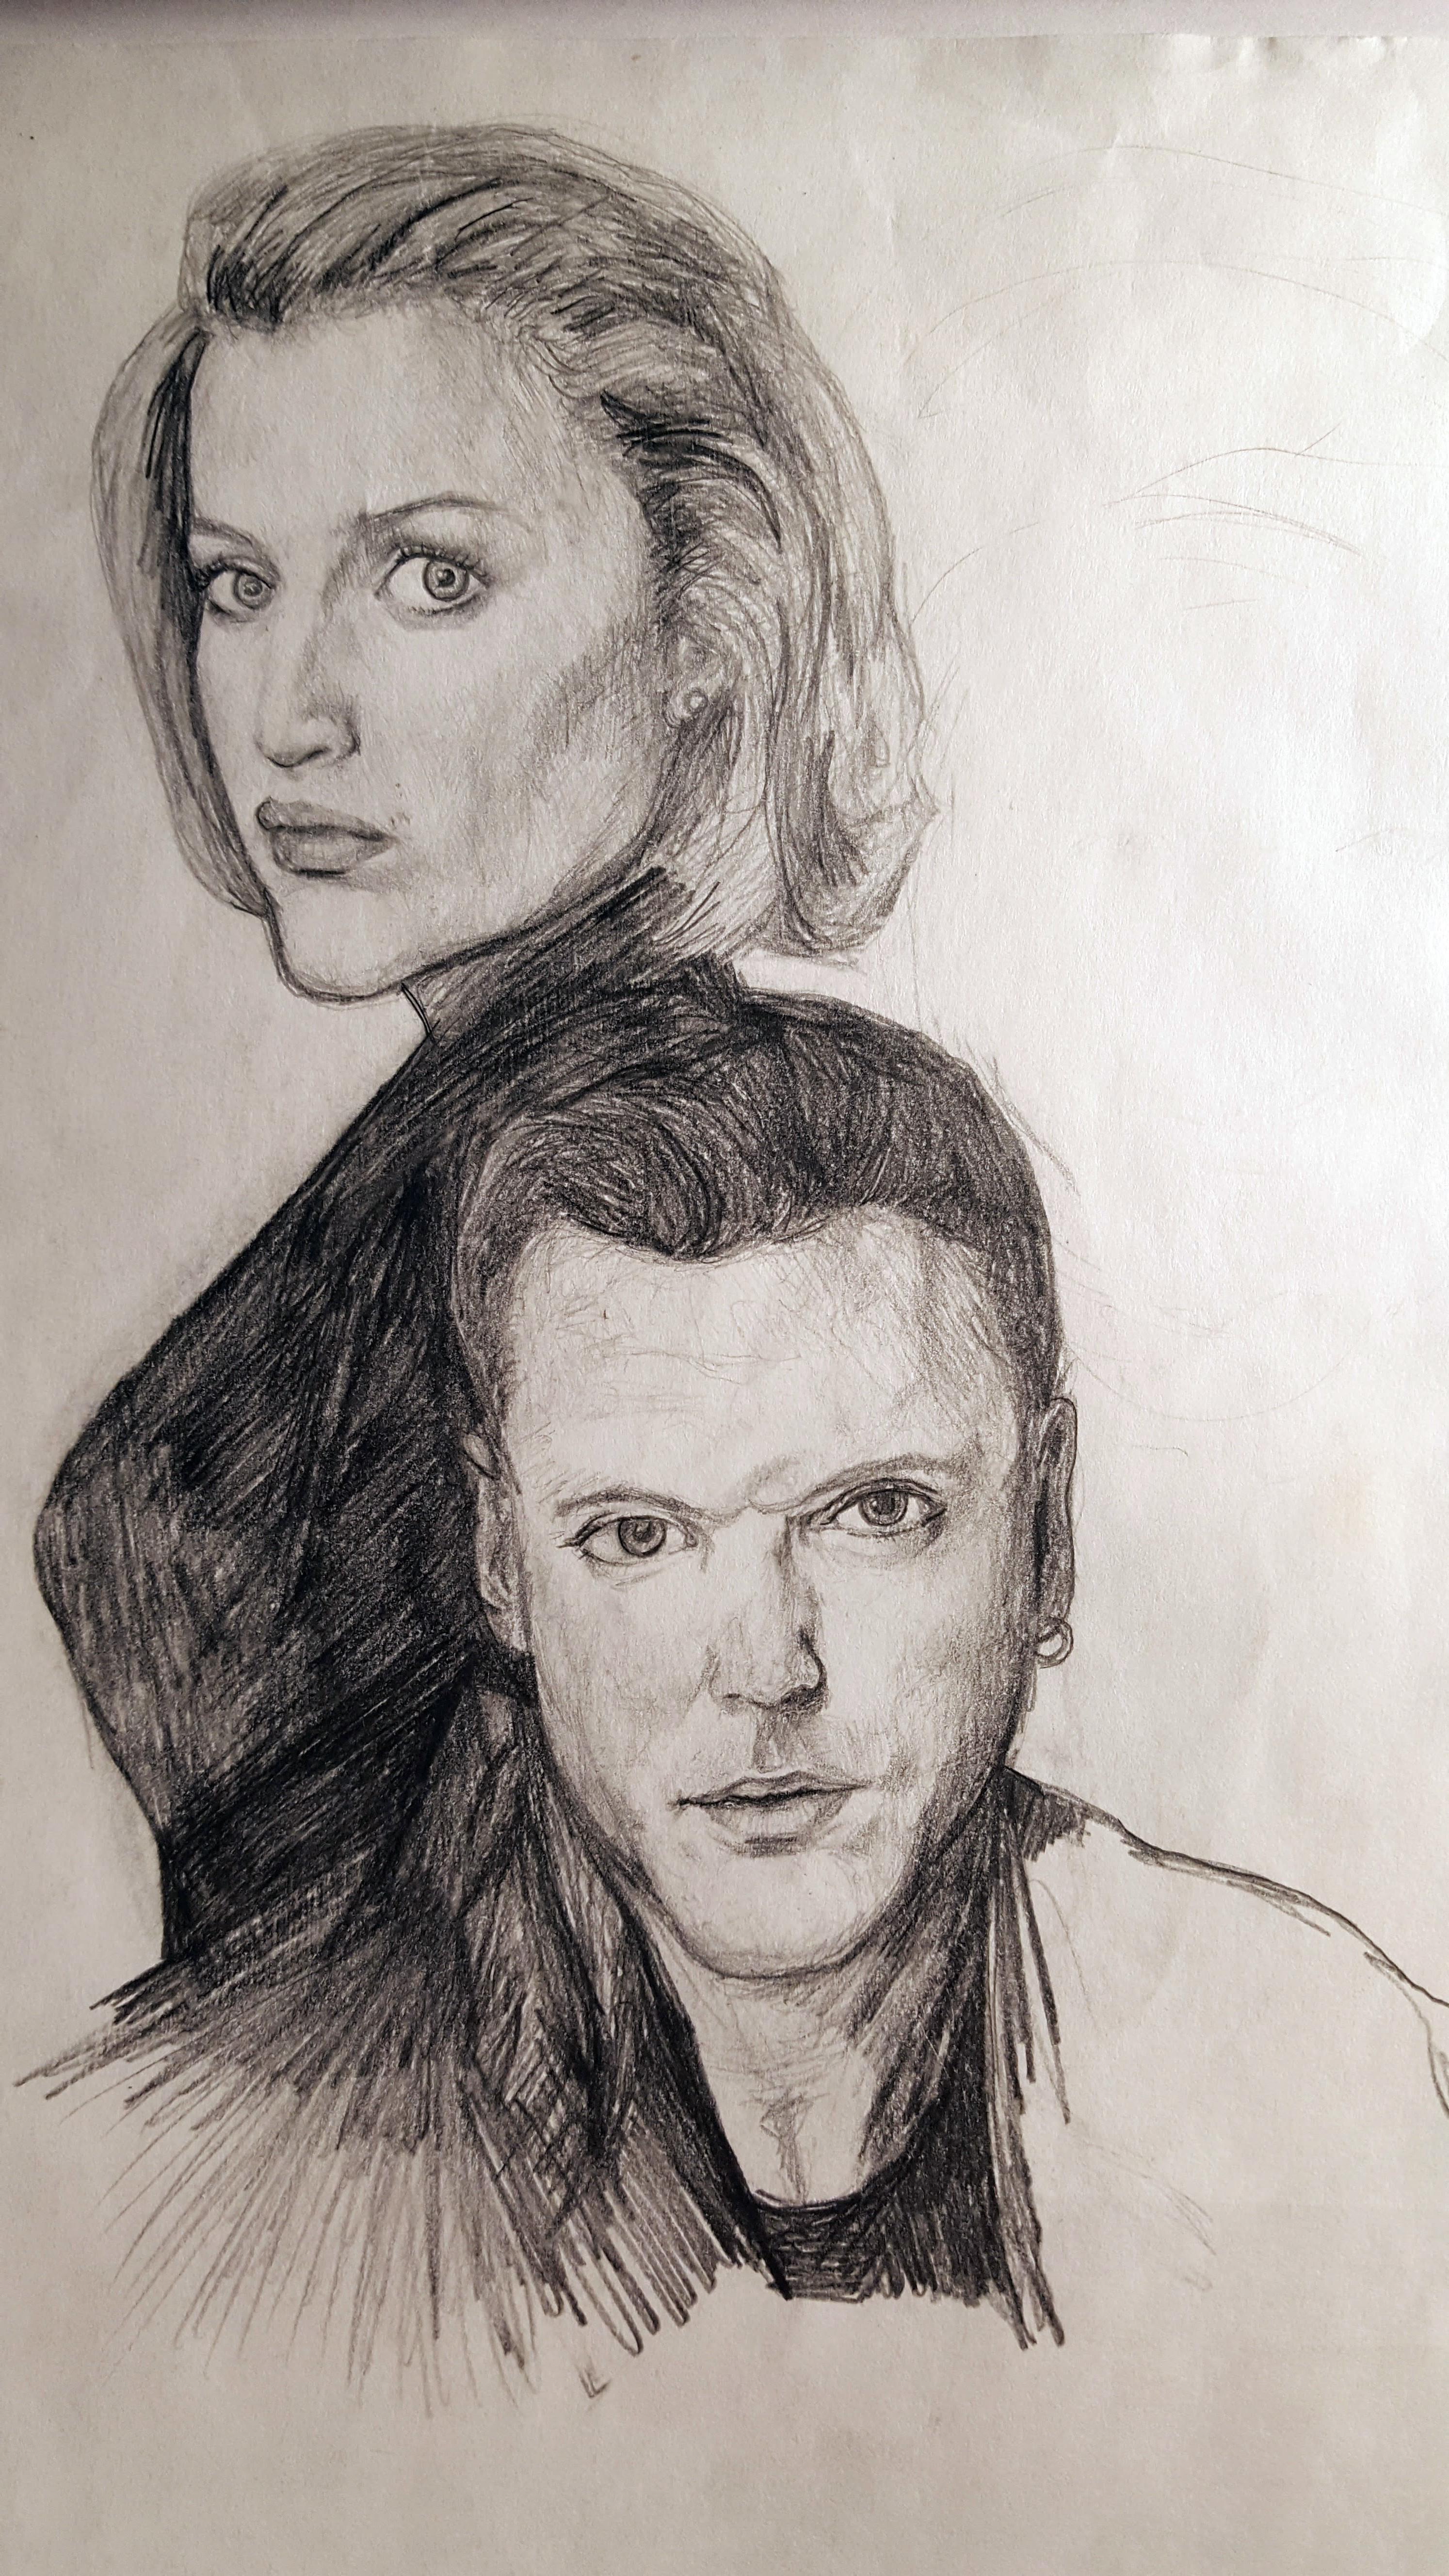 Scully, Krycek. Didn't finish Mulder and Skinner.